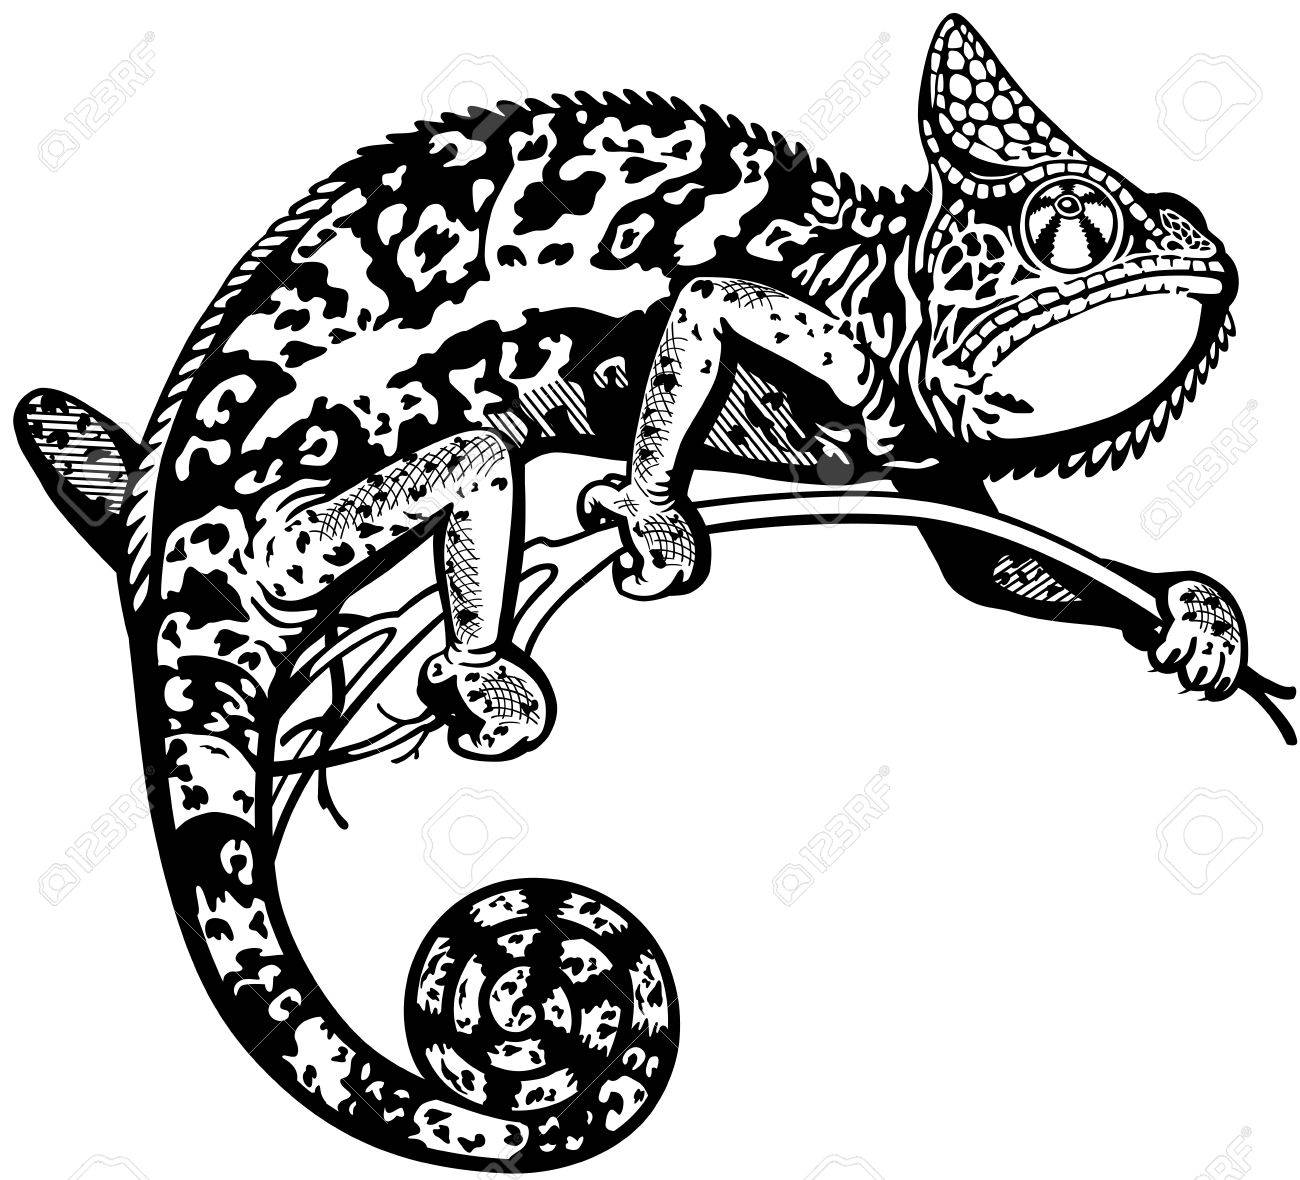 Chameleon Lizard, Black And White Side View Isolated Image Royalty ... for Clipart Lizard Black And White  51ane